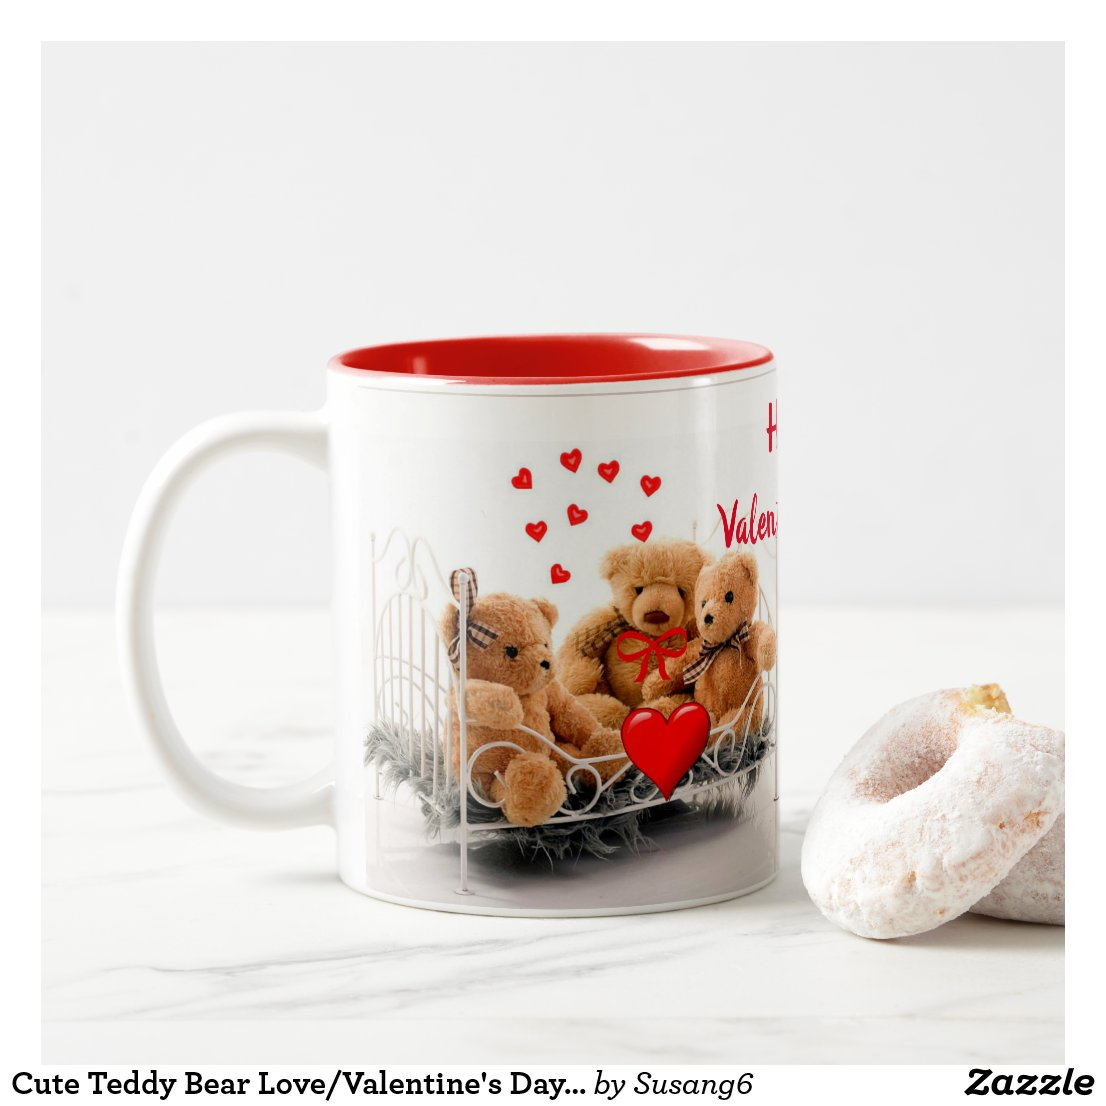 Cute Teddy Bear Love/Valentine's Day Mug